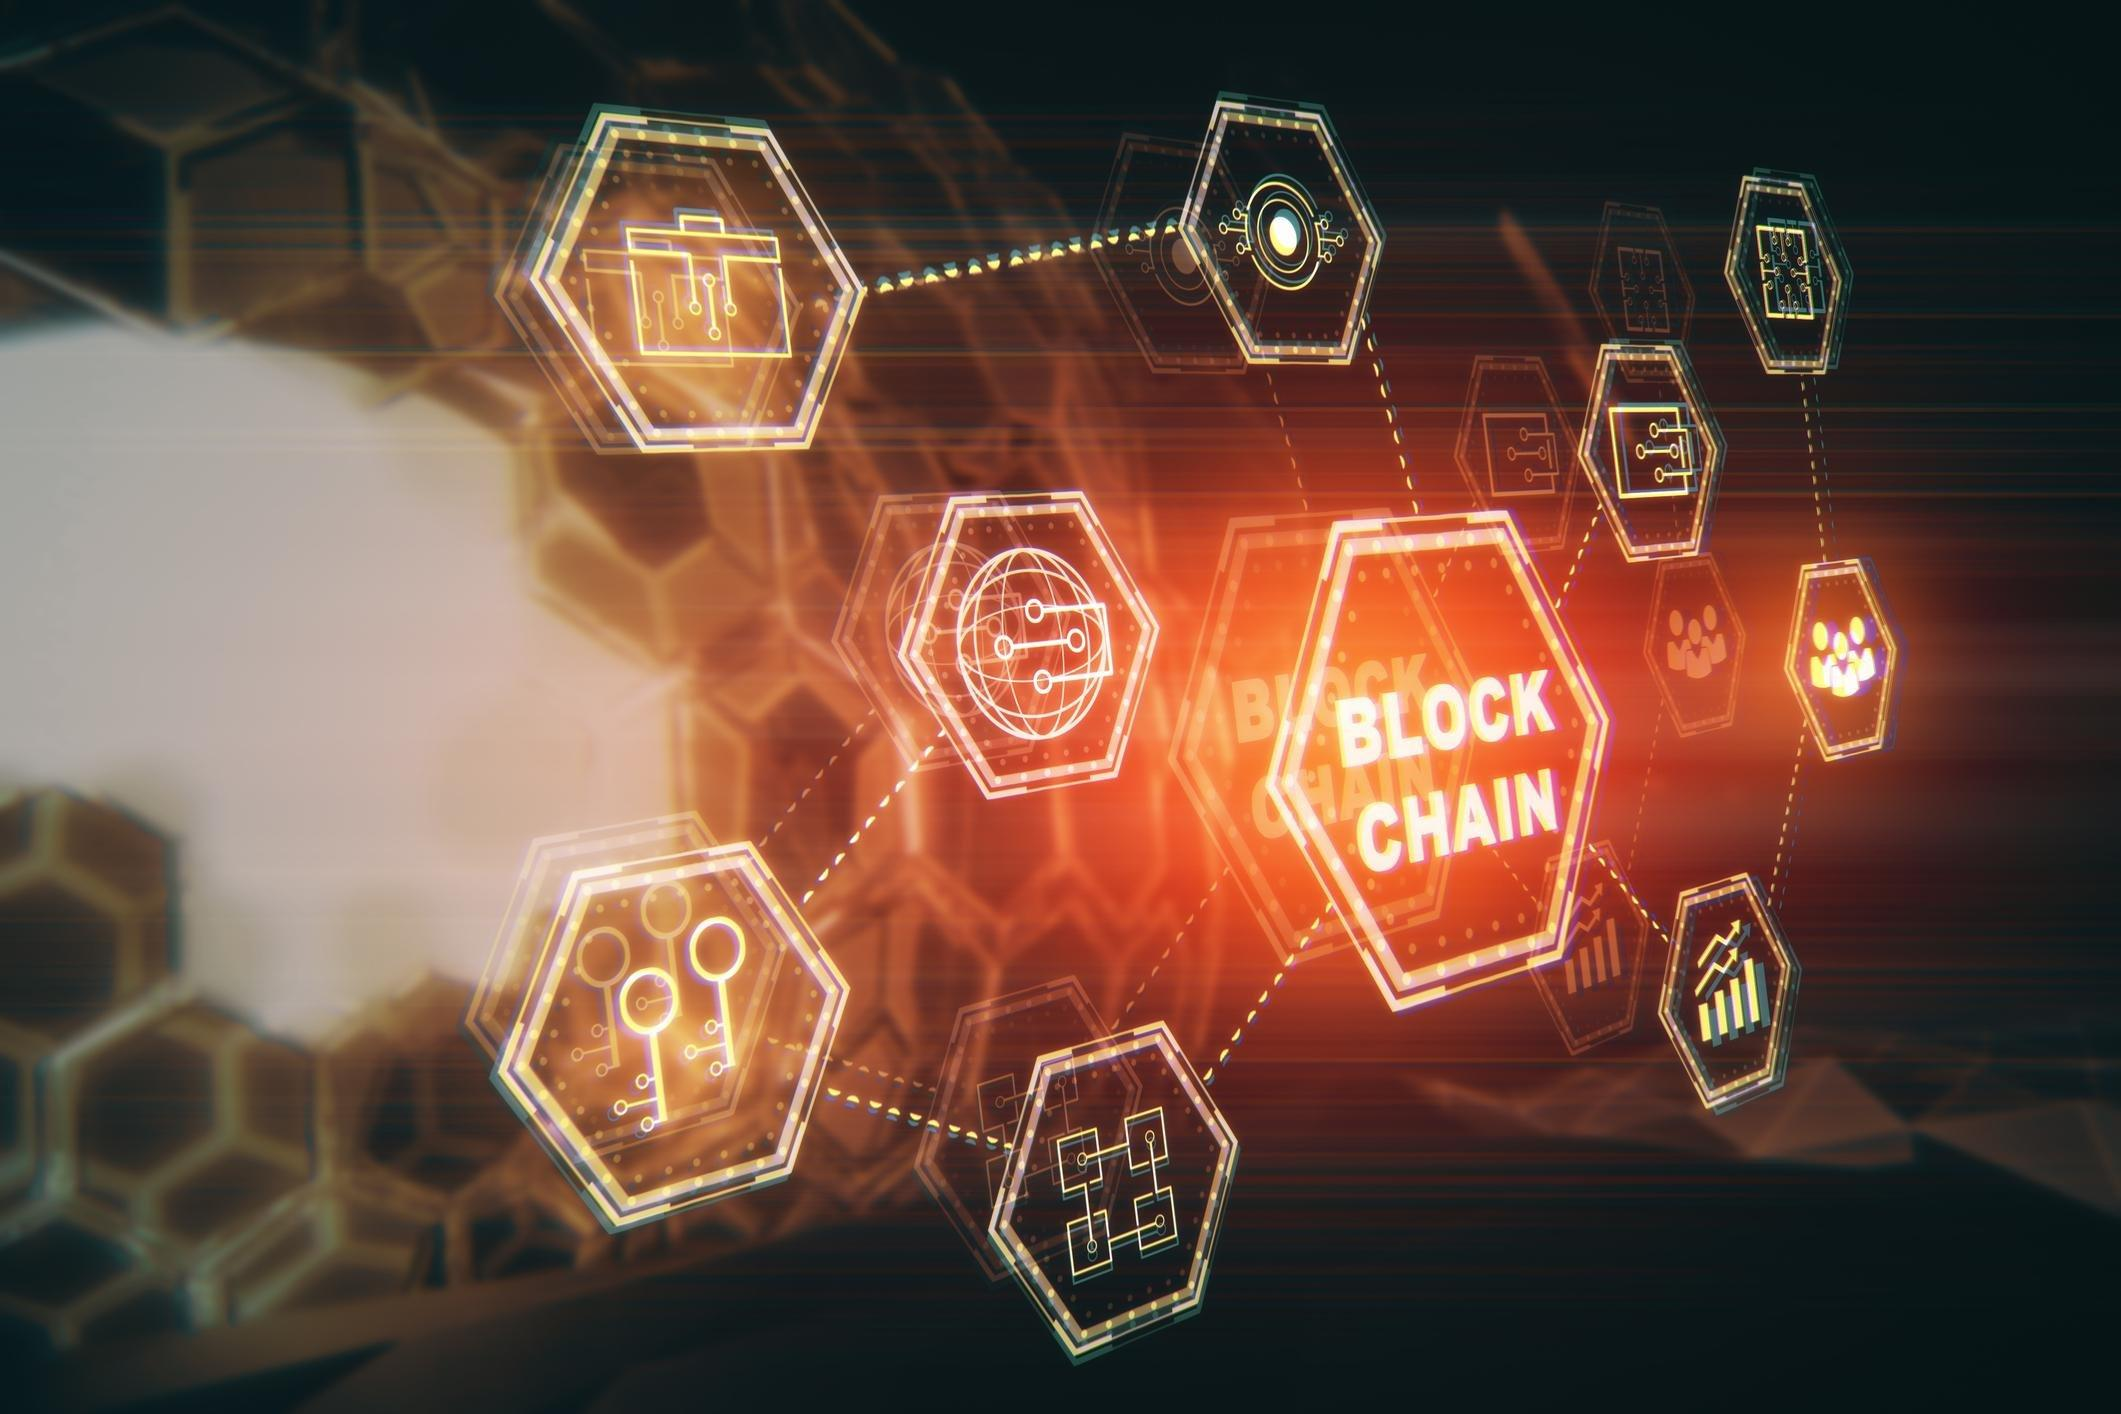 Blockchain could become a part of the US military's strategic weaponry